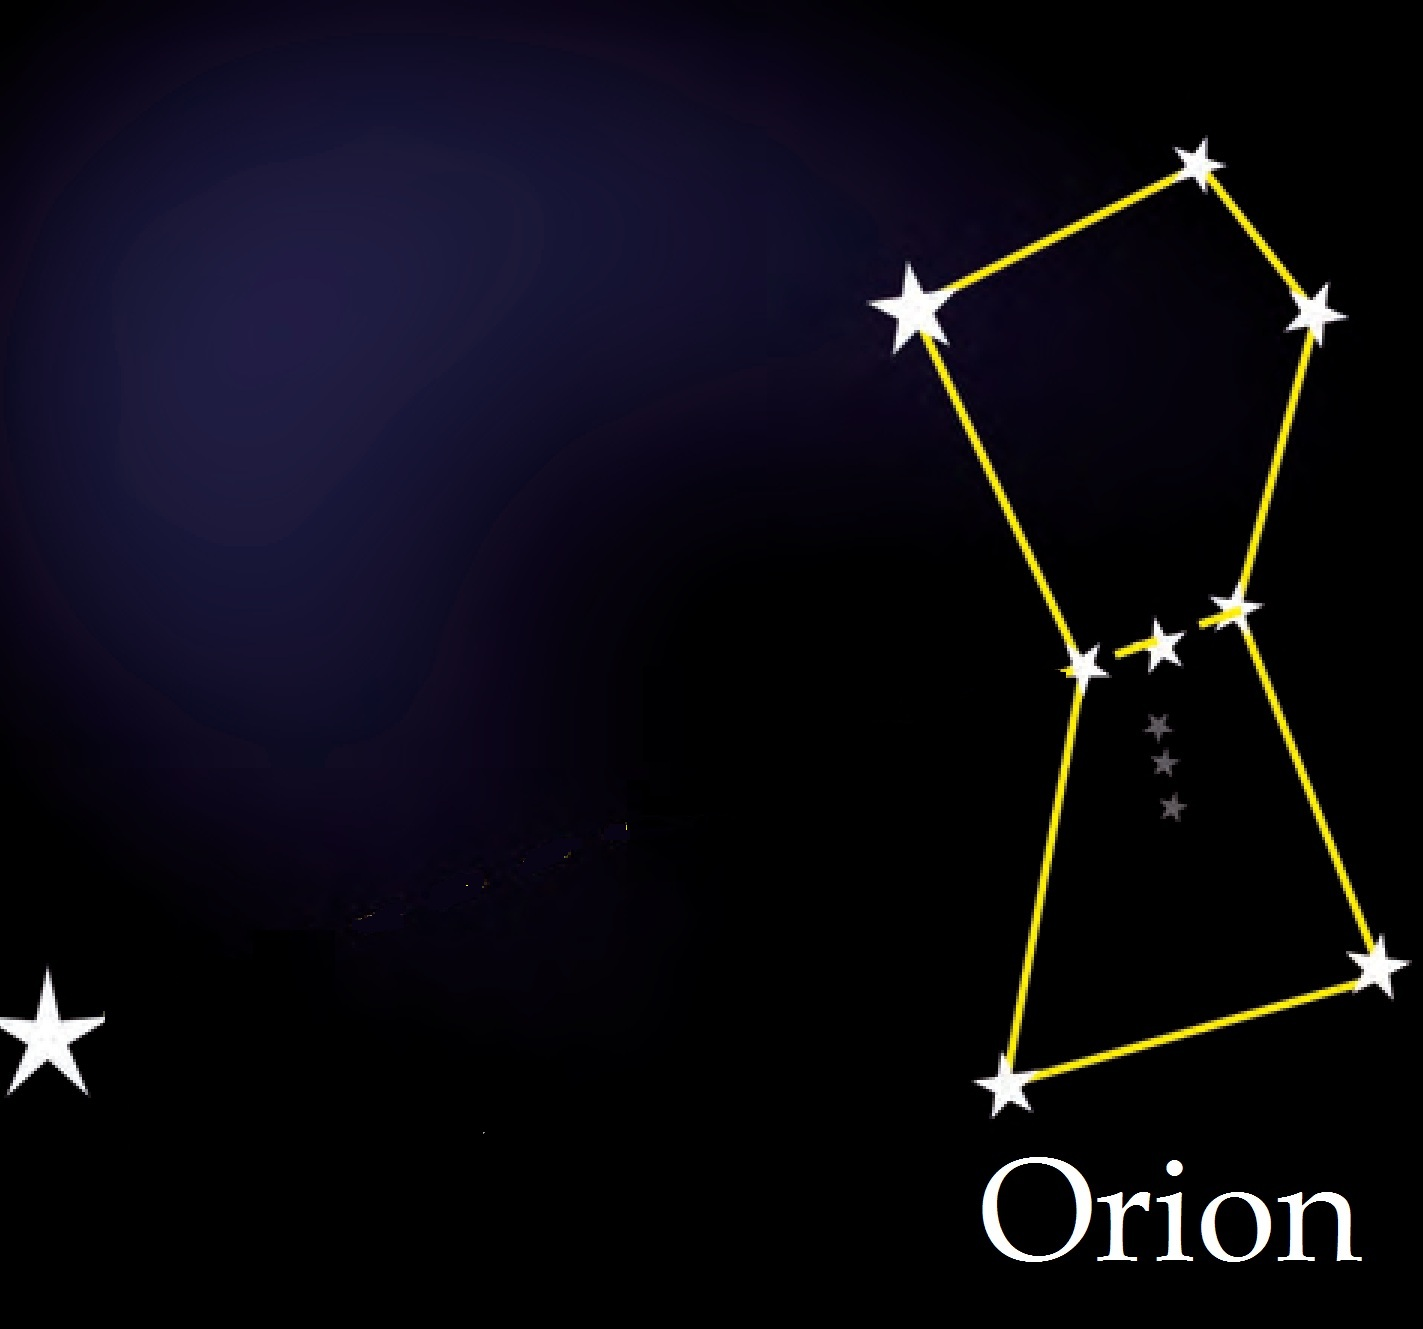 hight resolution of Constellations - Definition and Examples of Different Constellations